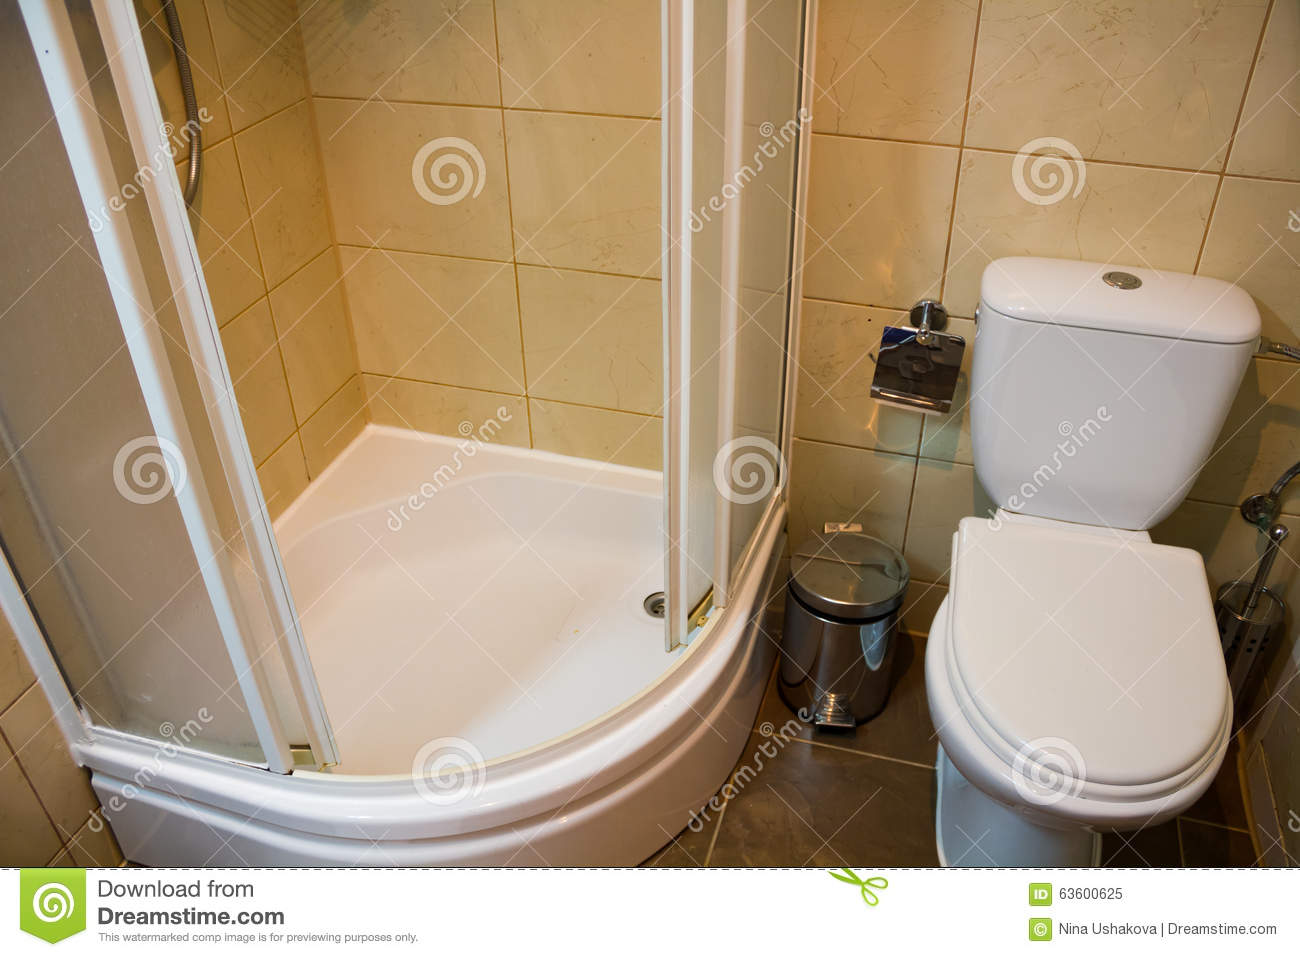 Download The Toilet And Shower Stock Image. Image Of Glass, Inside    63600625